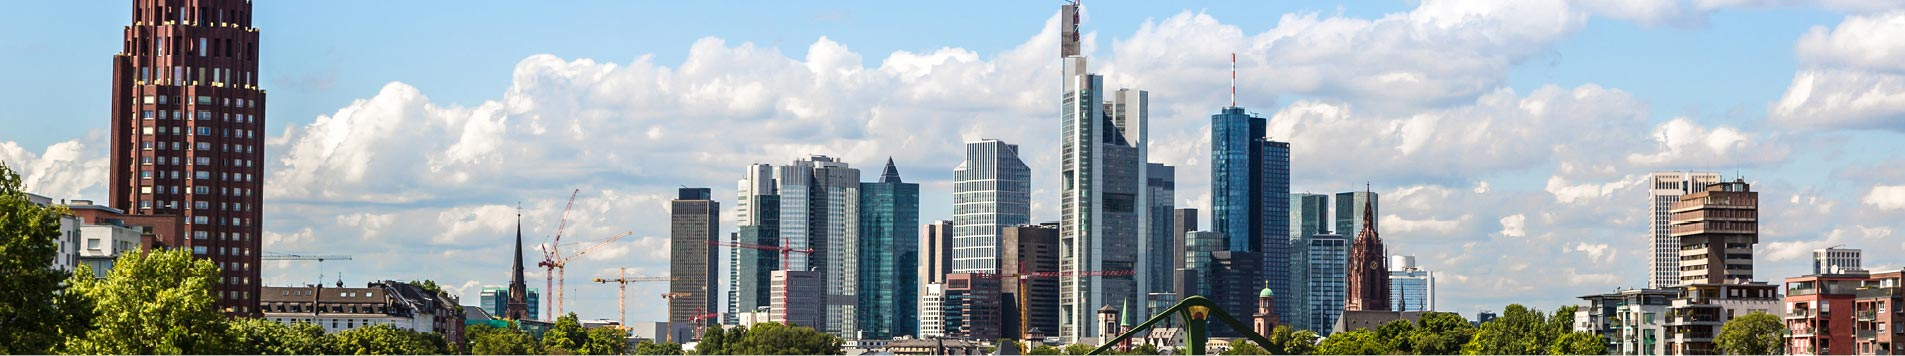 IPO Presentation Frankfurt City - Germany